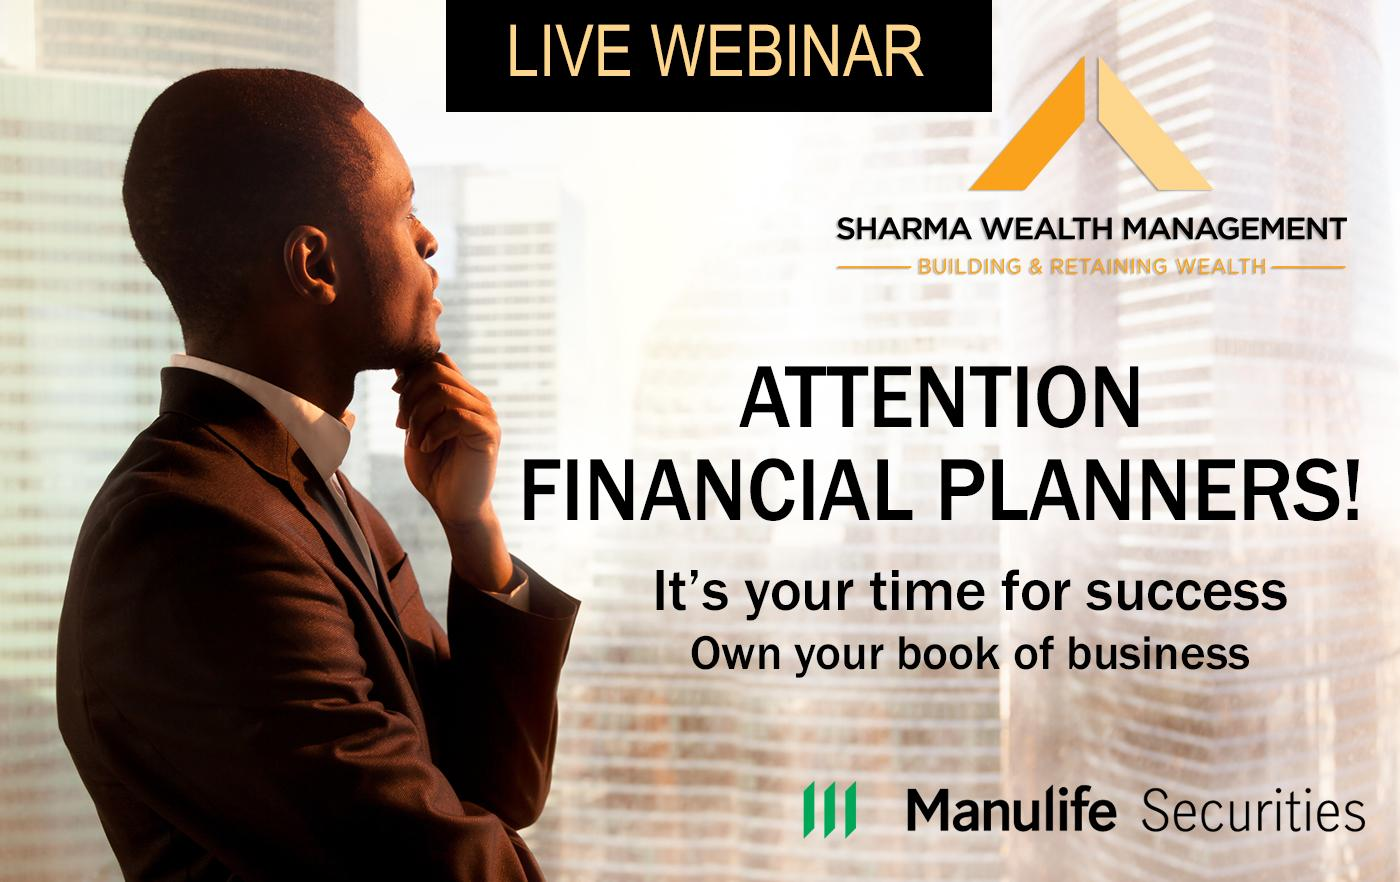 Financial Planners Have You Thought of Owning Your Book of Business? Thumbnail